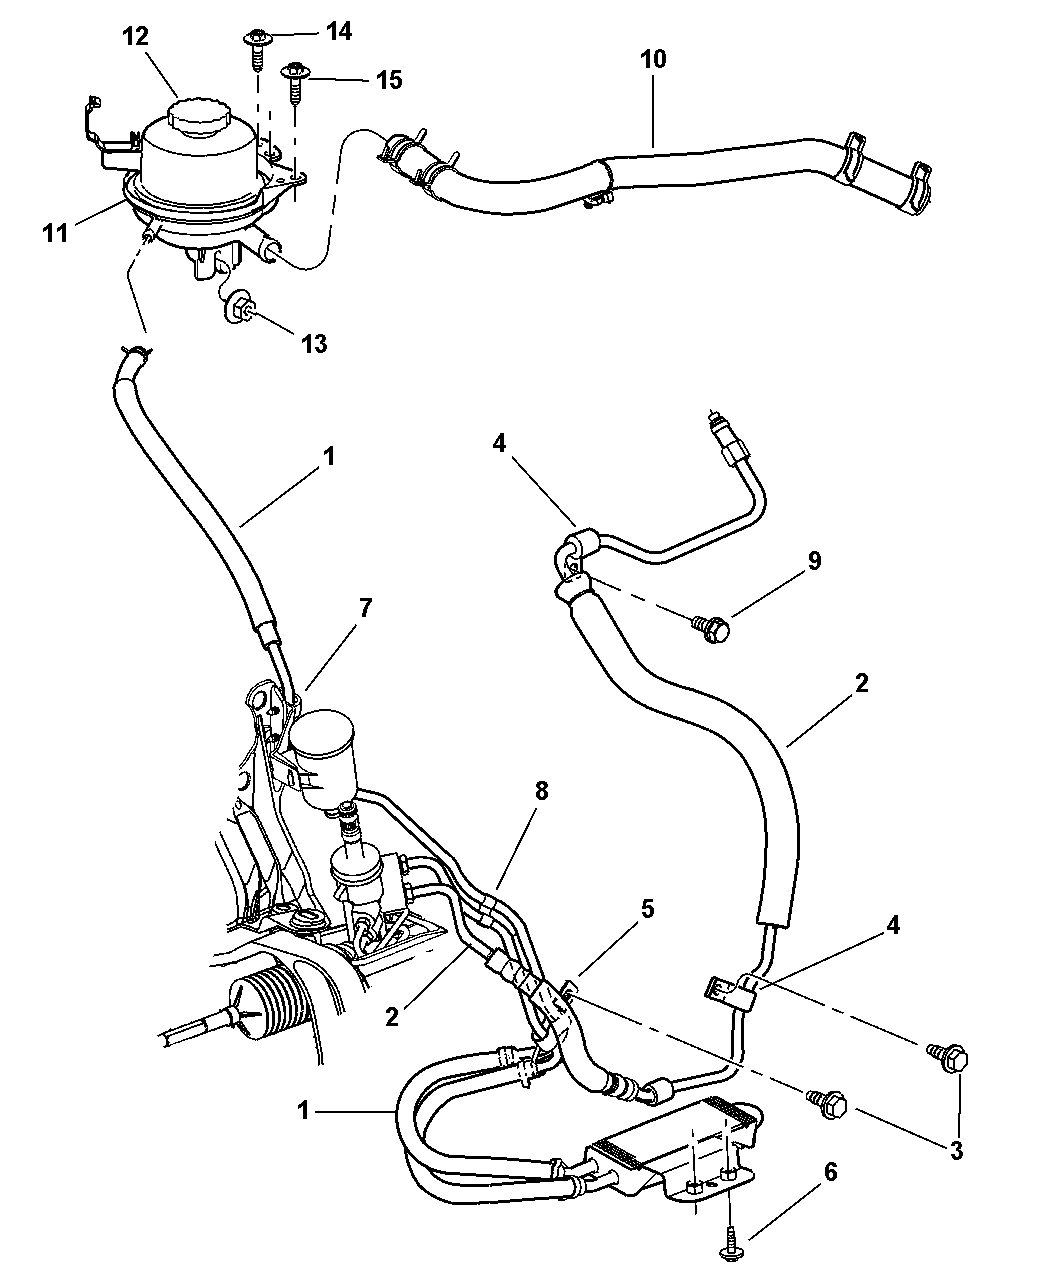 Power Steering Hoses For 2001 Chrysler Town & Country pertaining to 2001 Chrysler Town And Country Parts Diagram